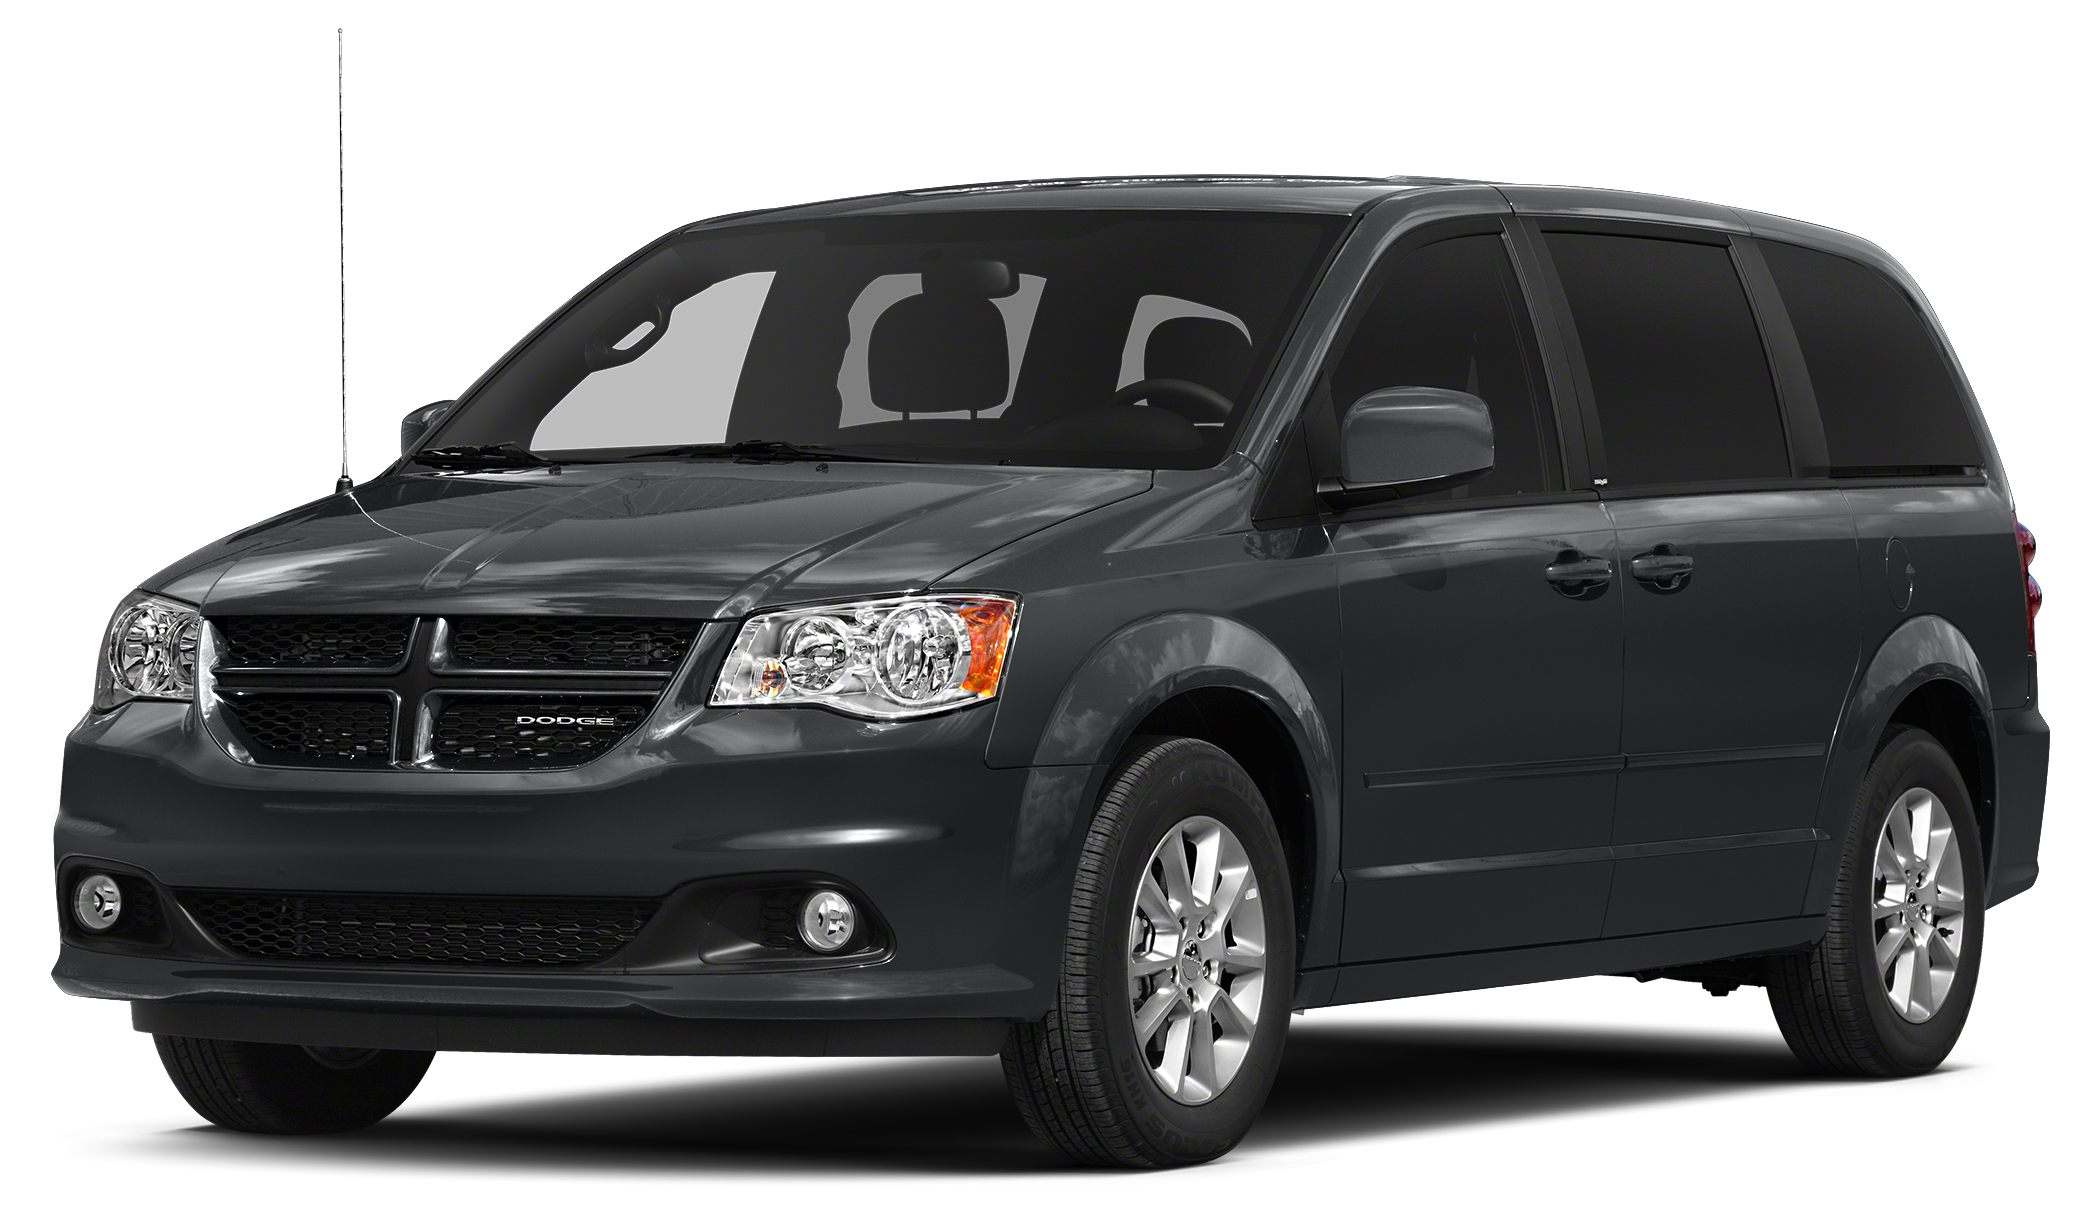 2016 Dodge Grand Caravan RT This Extra Clean vehicle represents the top percentage in the market